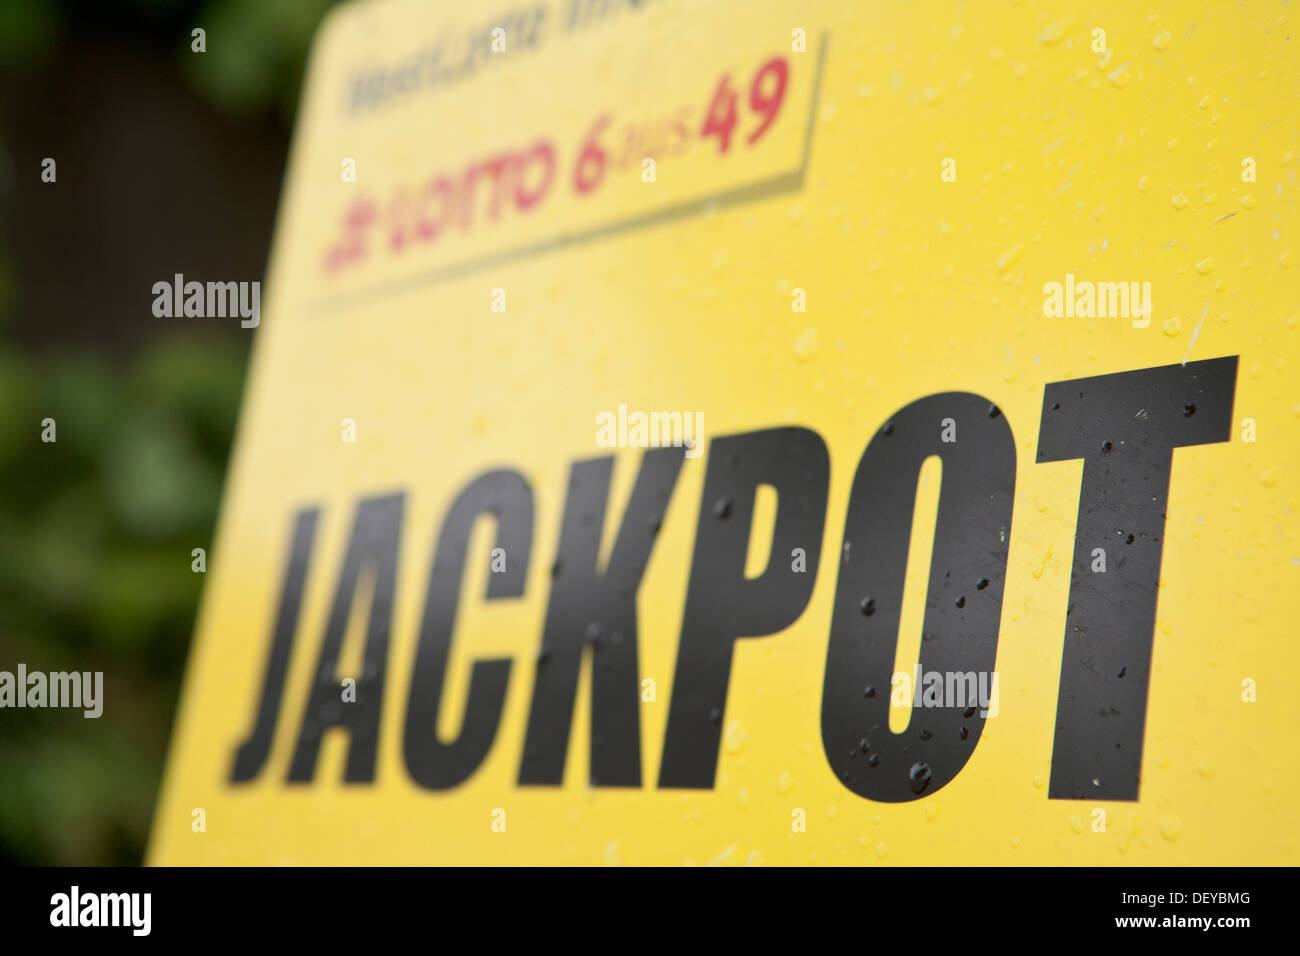 Yellow sign with the word 'Jackpot', German lottery - Stock Image